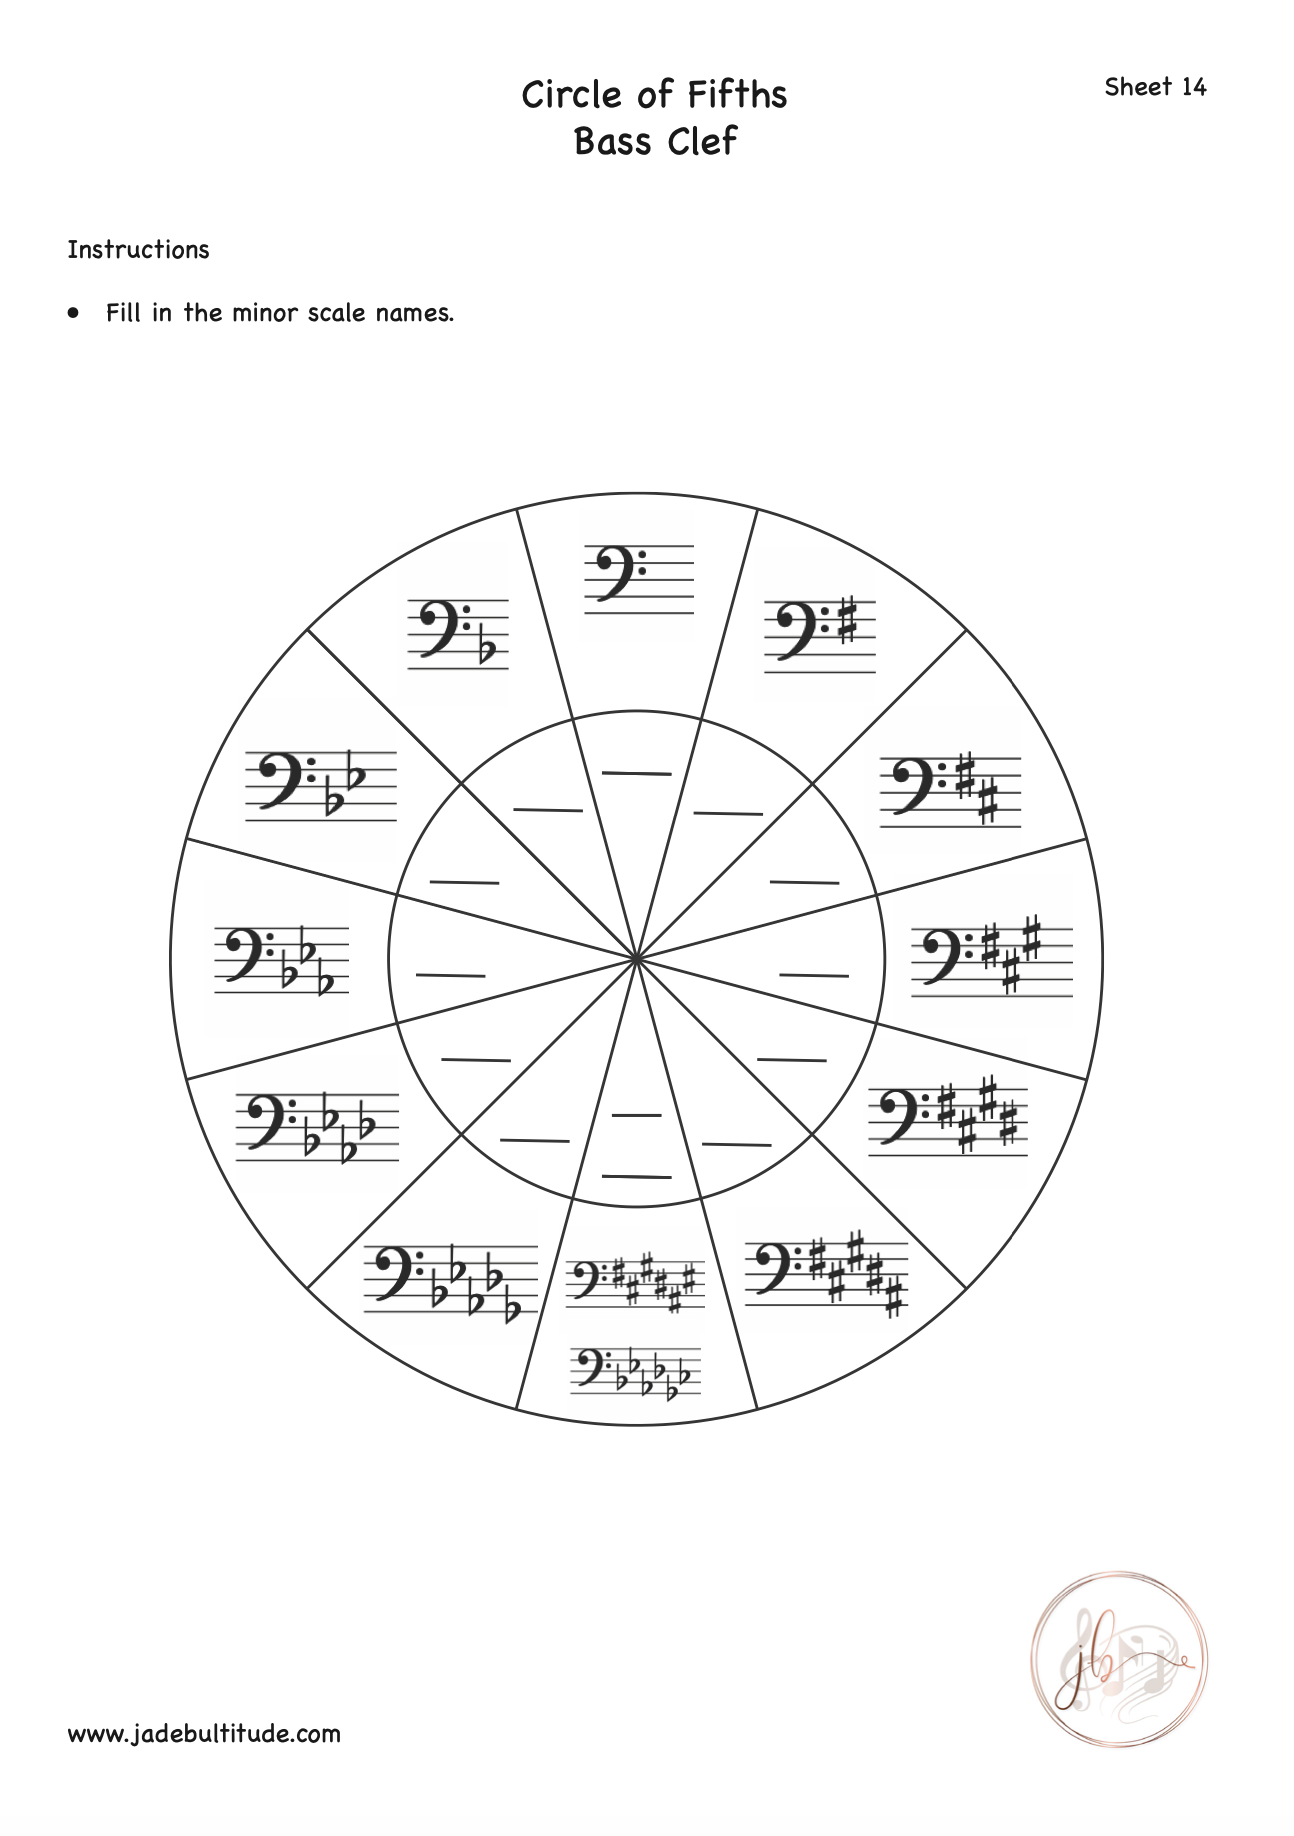 Circle Of Fifths Worksheet Bass Clef Minor Key Signature